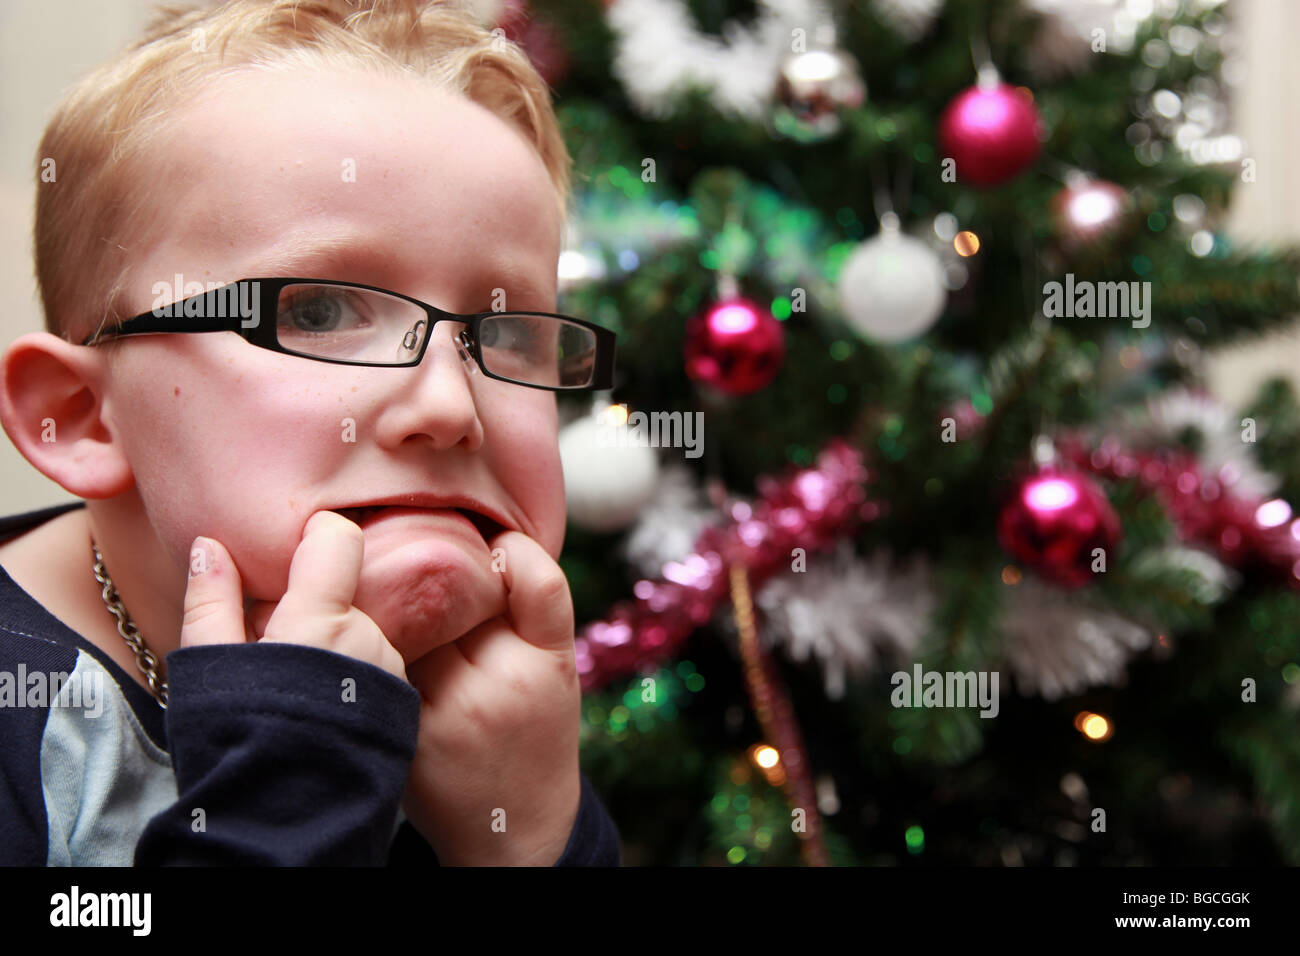 ea1504ae31a3 4 year old boy wearing glasses and pulling faces Stock Photo ...